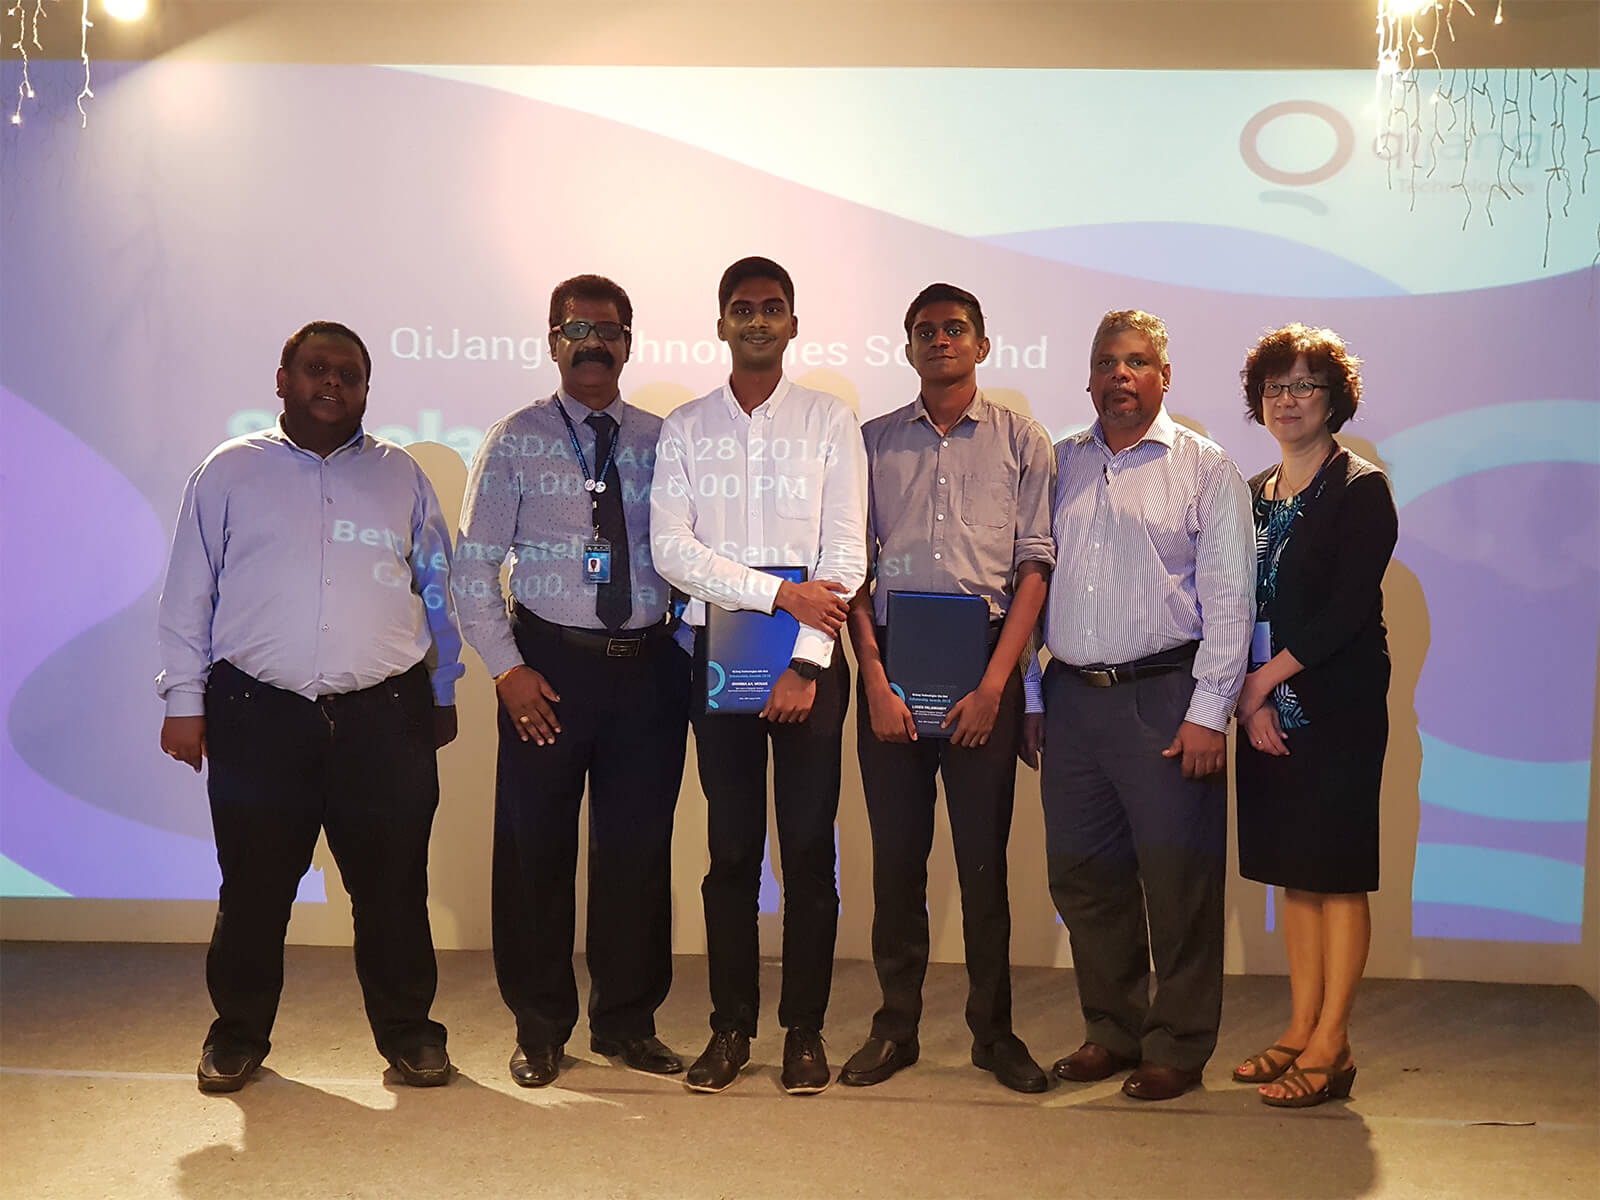 From the left, Mr. Kuhaanand, Chief Technologist, Mr.Visva, representative of APU Malaysia,  Award Receipient Sharma Mogan,  Award Receipient Logan Palaniandy, Mr. Subramaniam, CEO of Qijang Technologies and Miss.Julie representative of APU Malaysia.